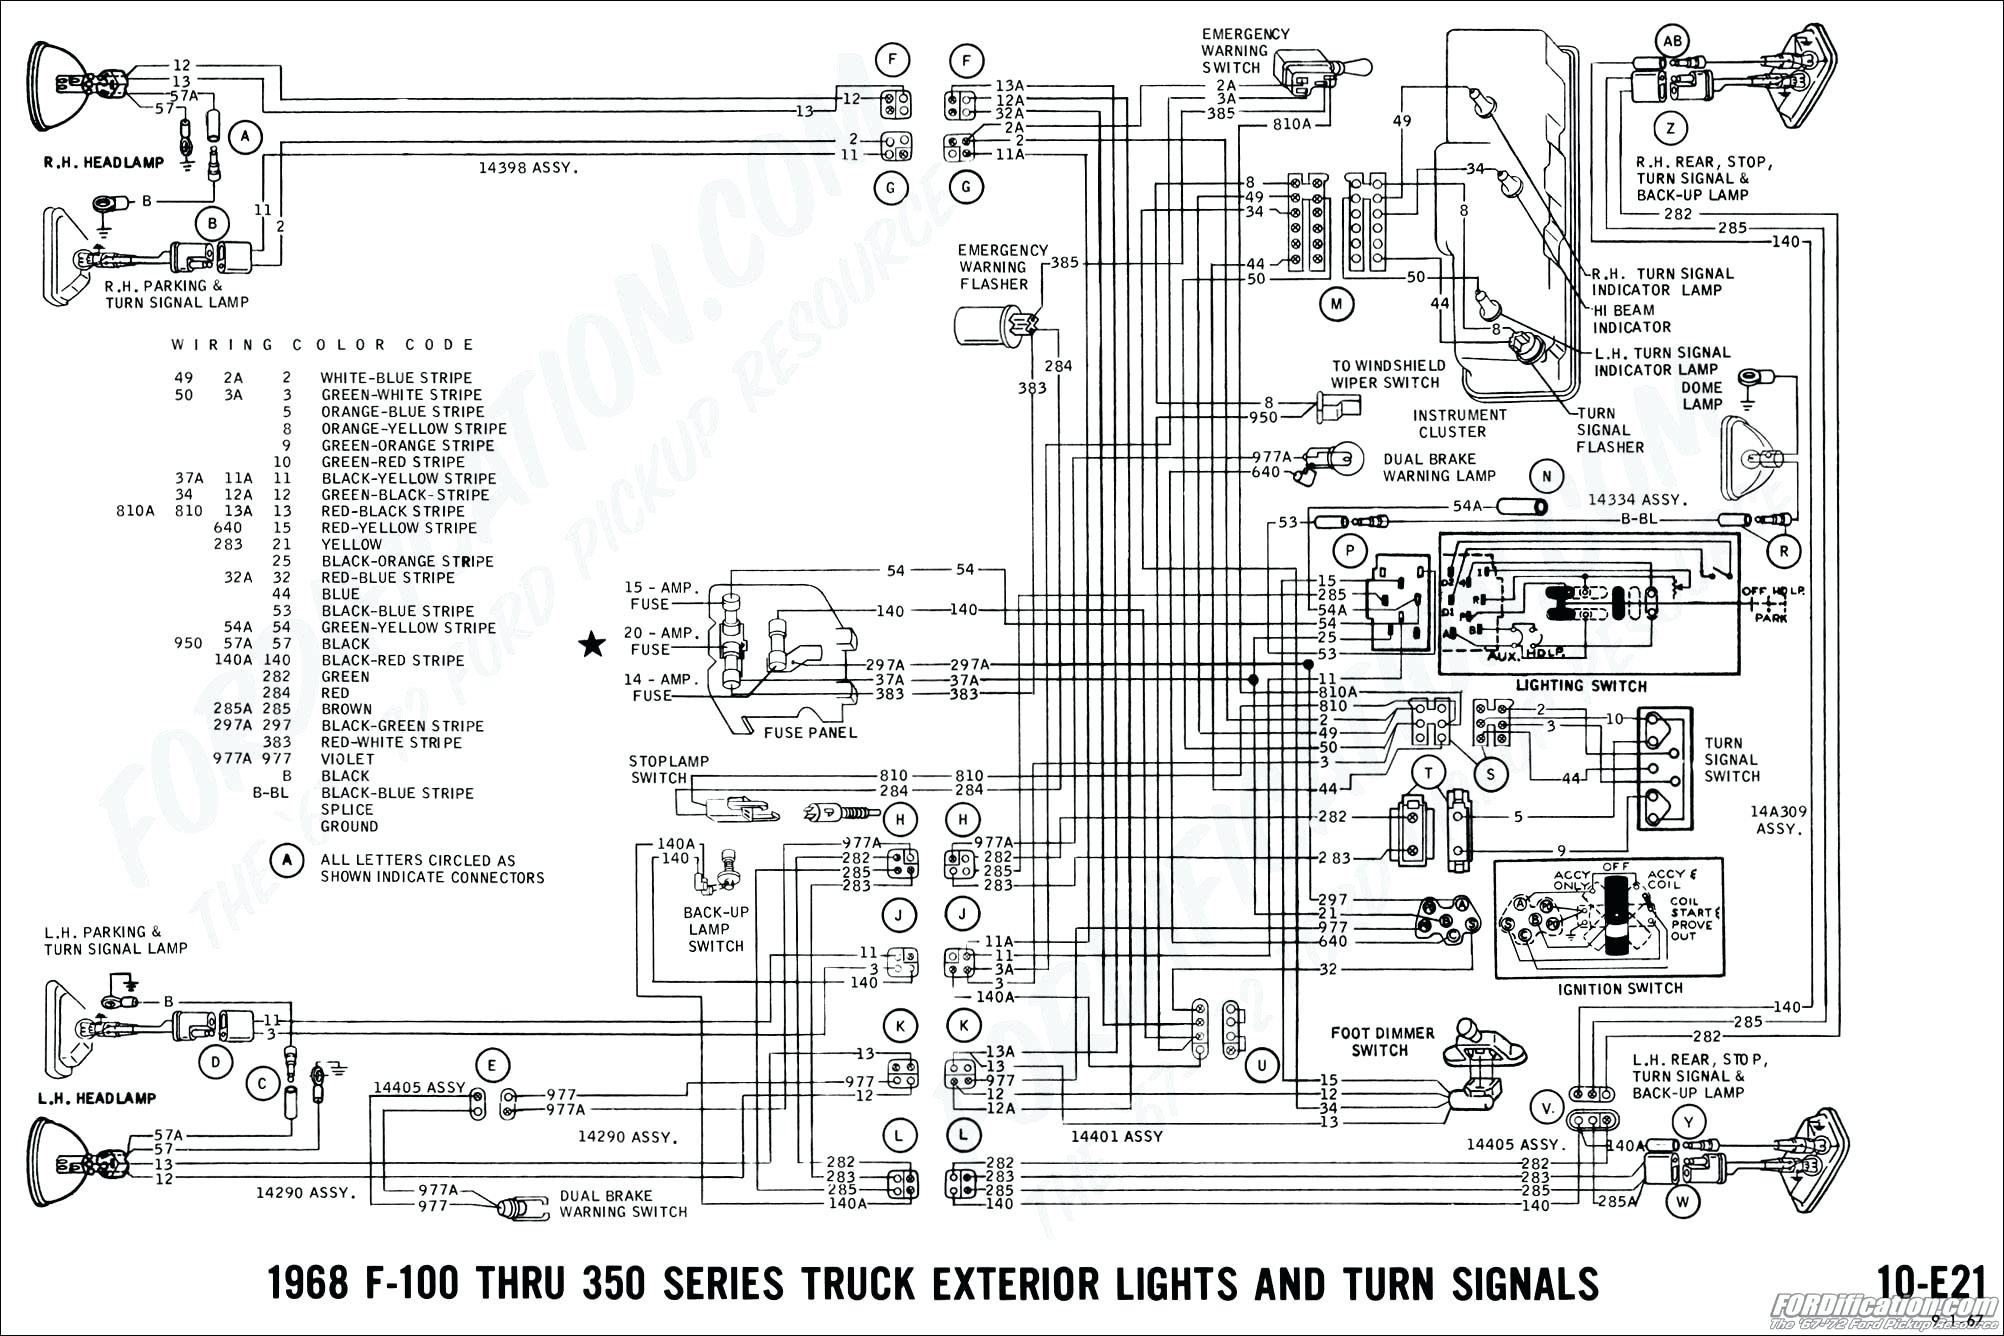 Oliver 1655 Tractor Wiring Diagram - Wiring Diagram Review on